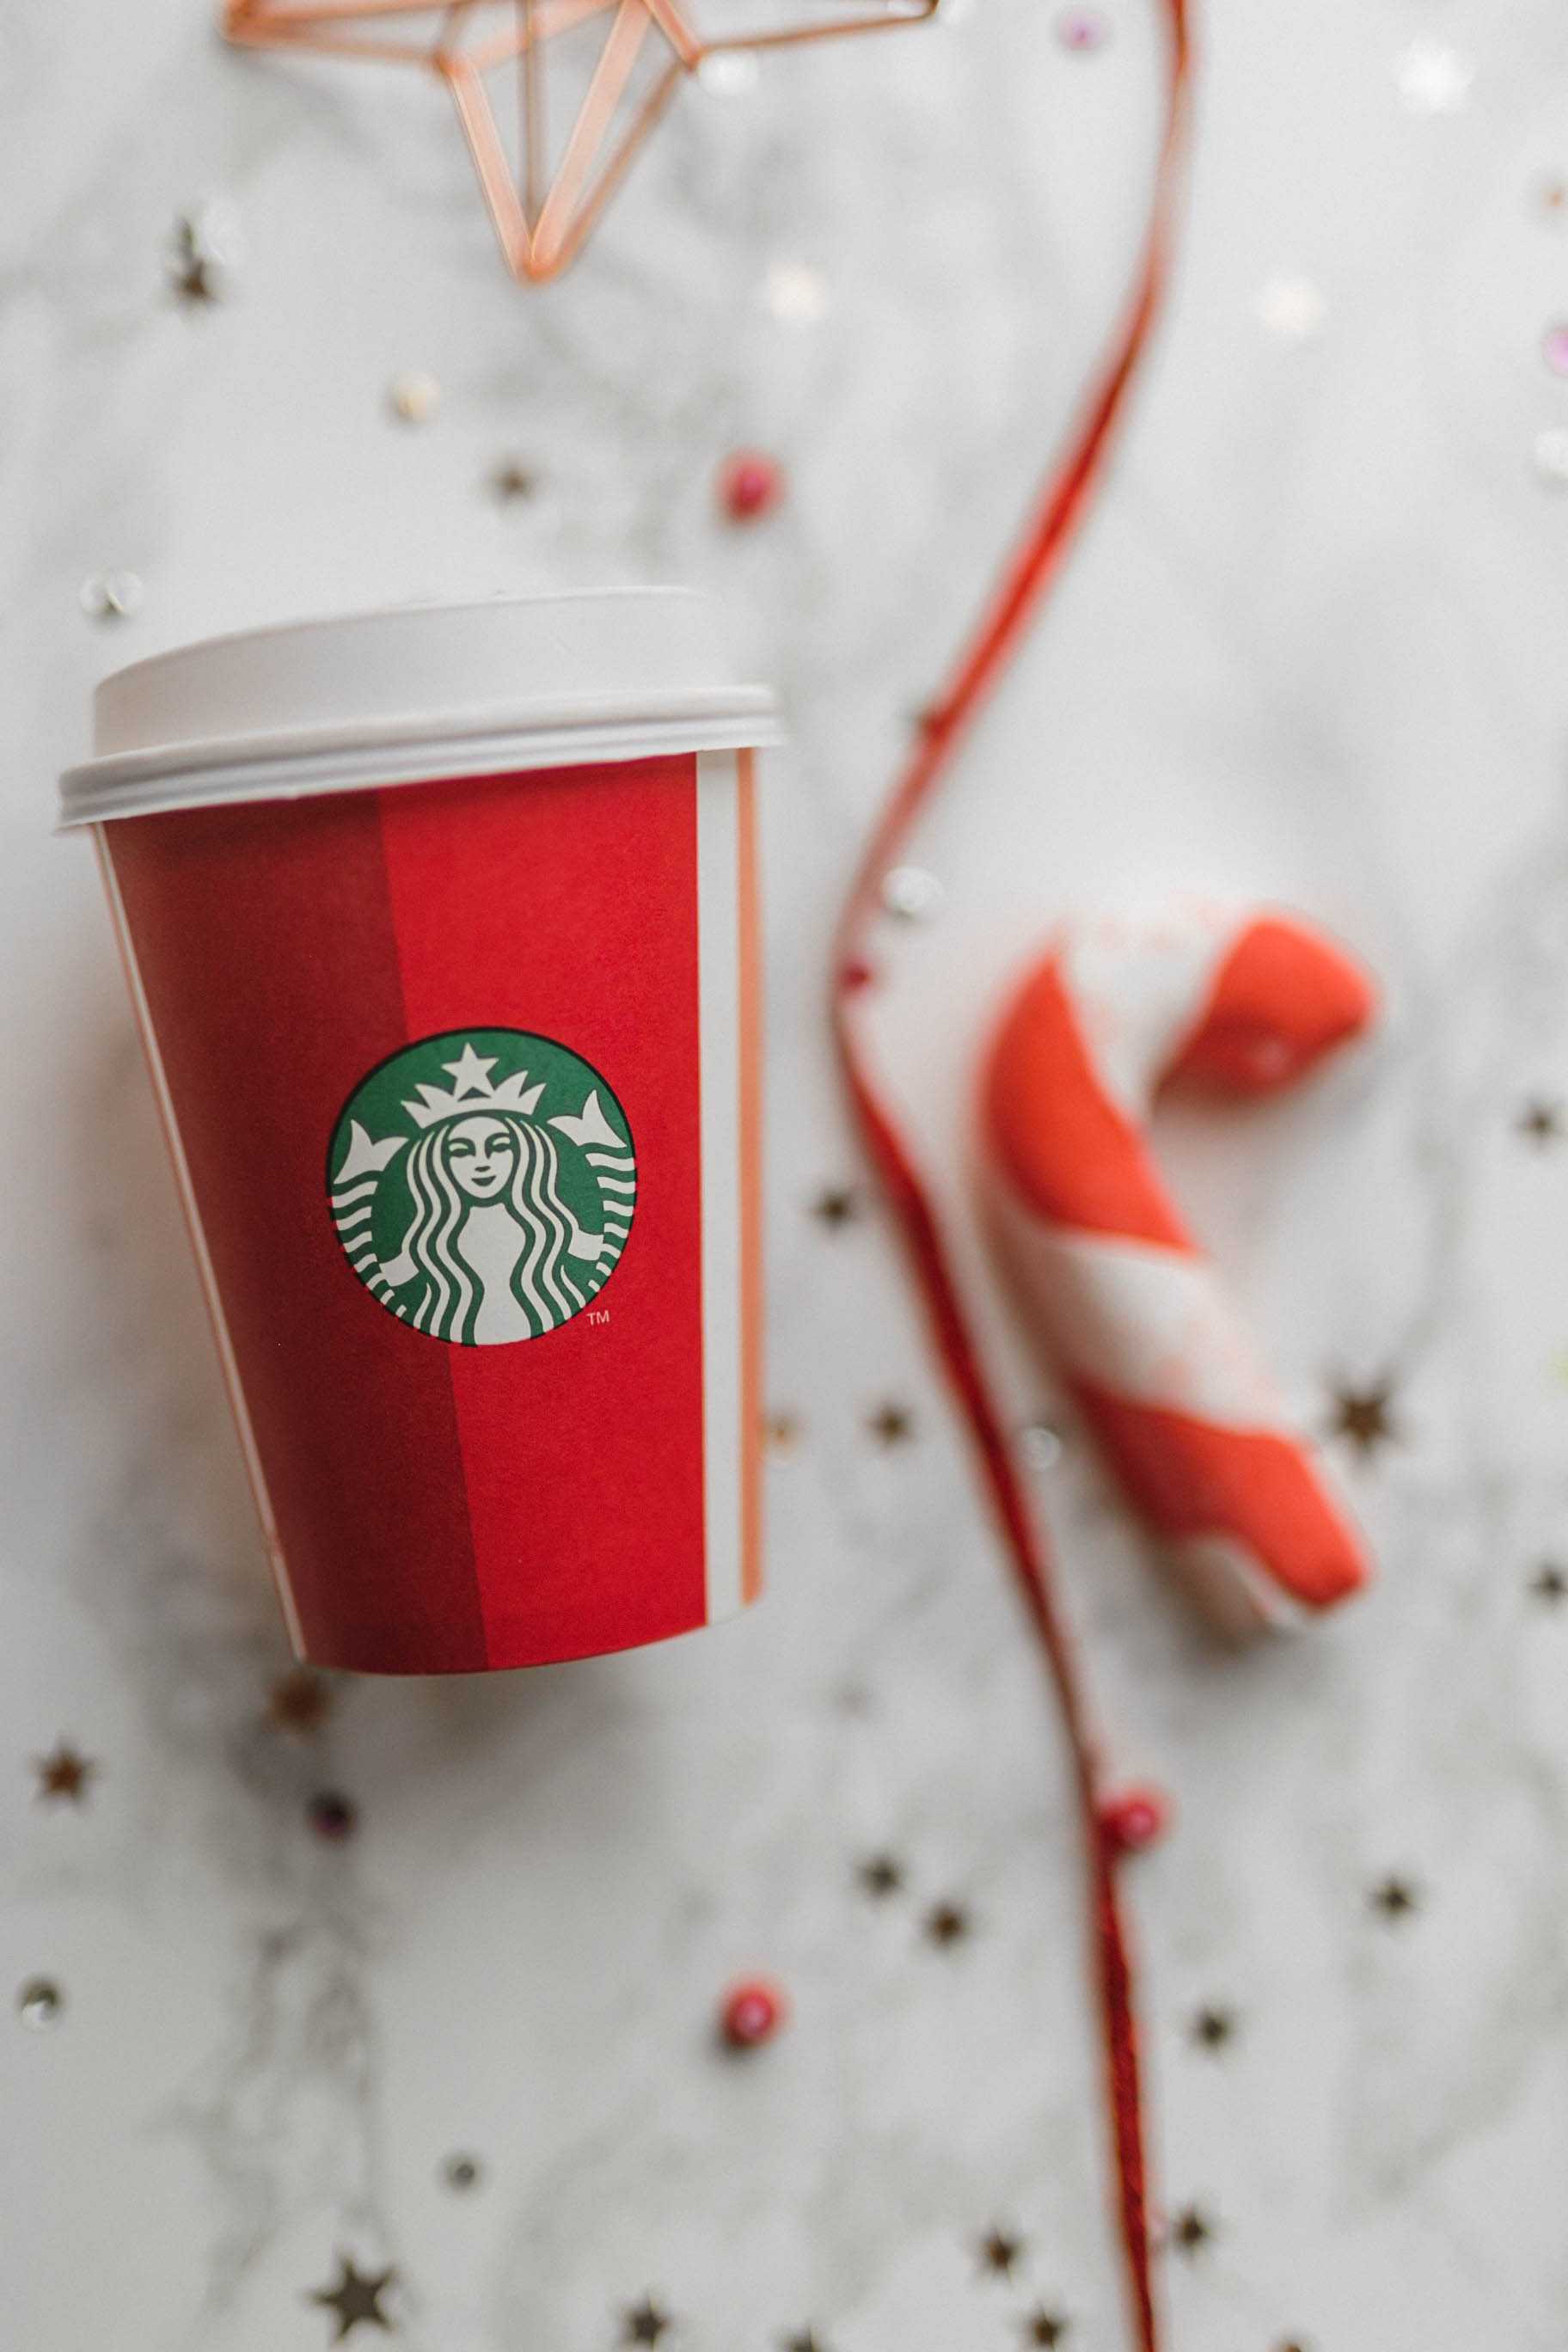 Christmas, 2018, Flatlay, Flat lay, Blog, Starbucks, Red Cups 2018, Red Cups, Candy Cane, Festive, UK Bloggers, katiebwrites, KatieWritesUK, Katie Writes, ©Katiewrites.co.uk